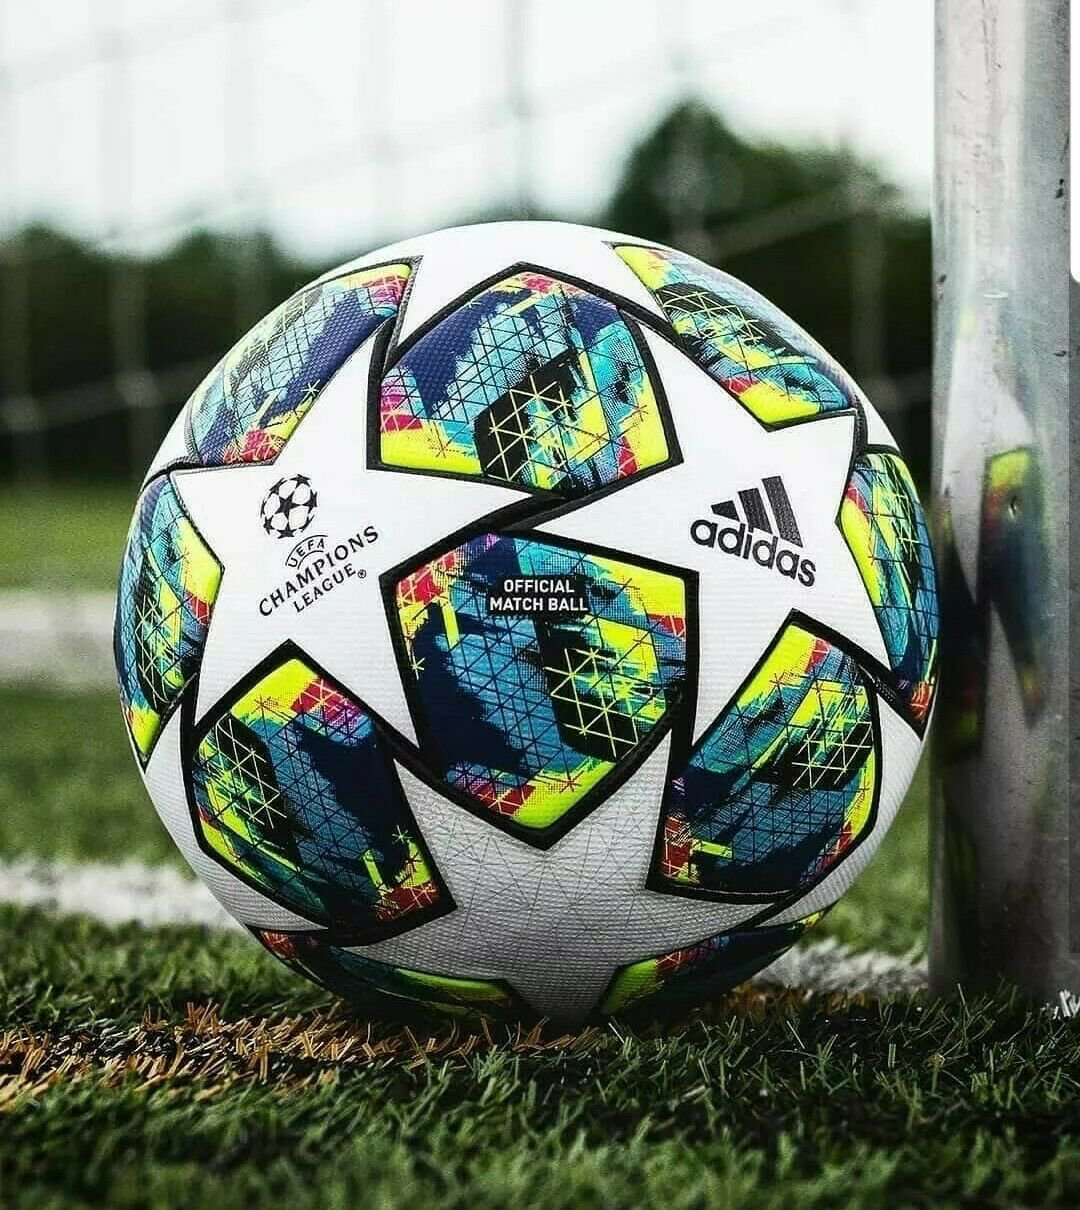 Champions League Final Authentic Adidas official Match Ball 2019-20 [SIZE 5]